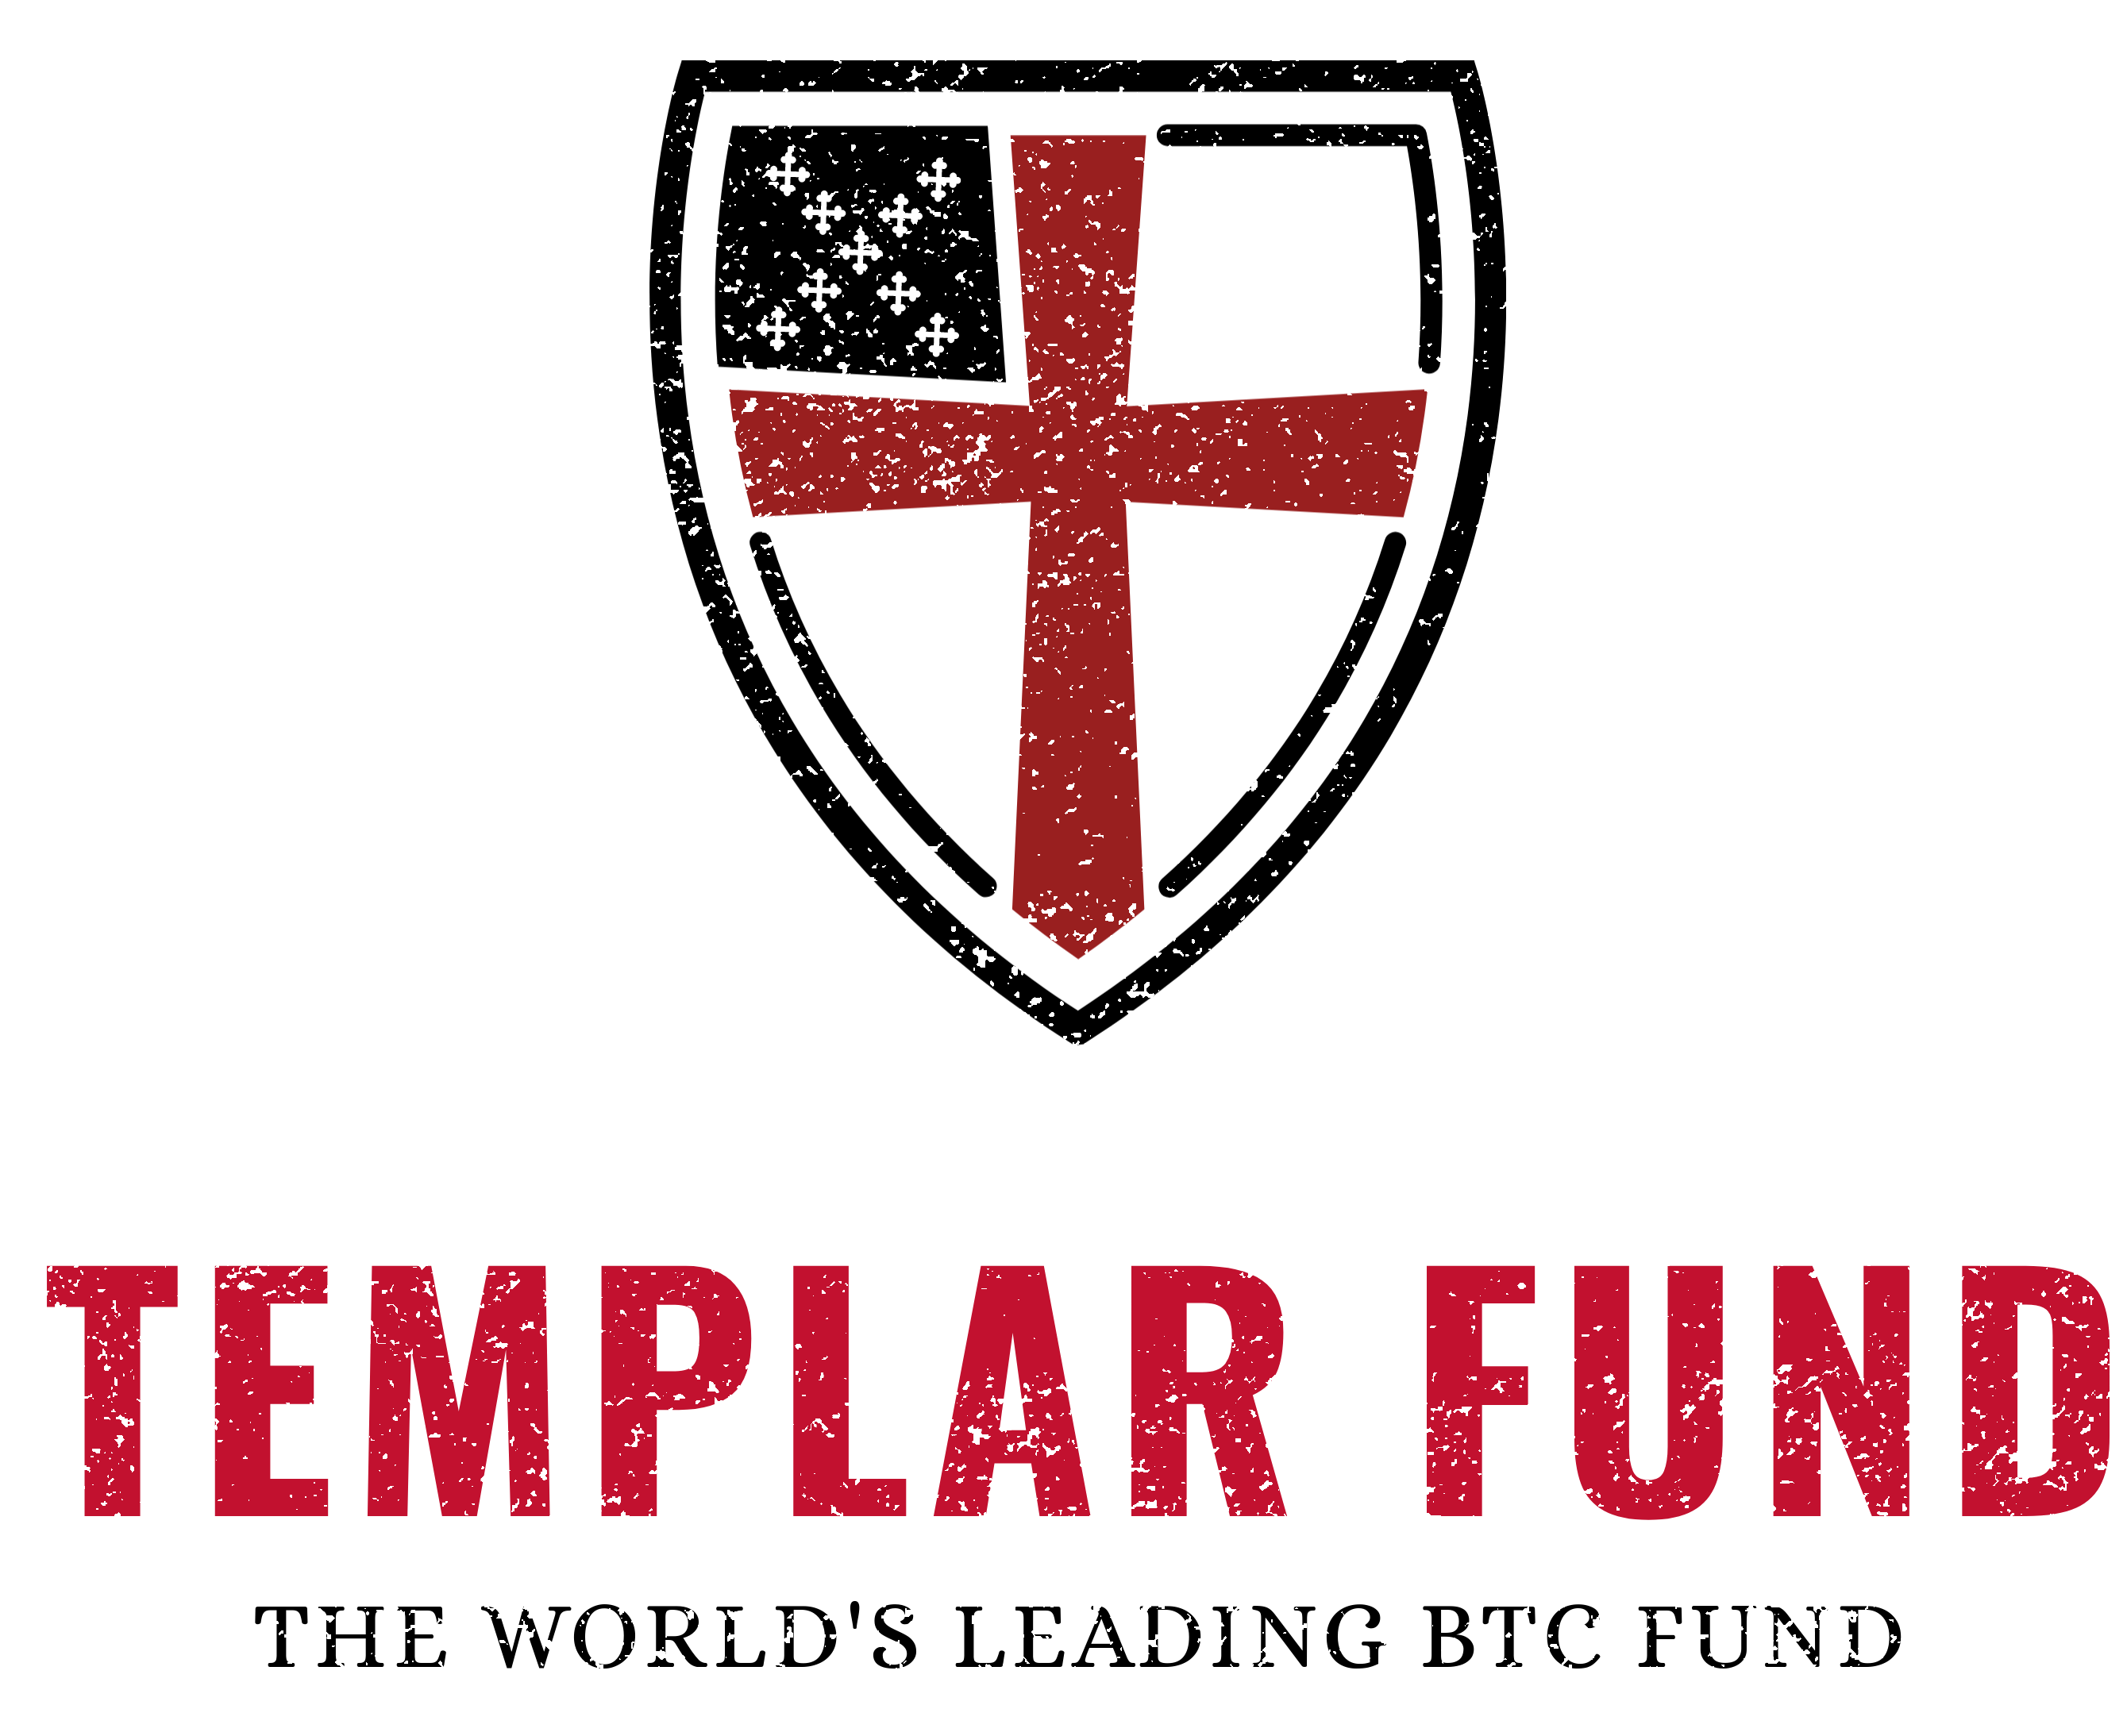 TEMPLAR FUND EARNS 0.574% IN PREVIOUS 10 DAY TRADE PERIOD